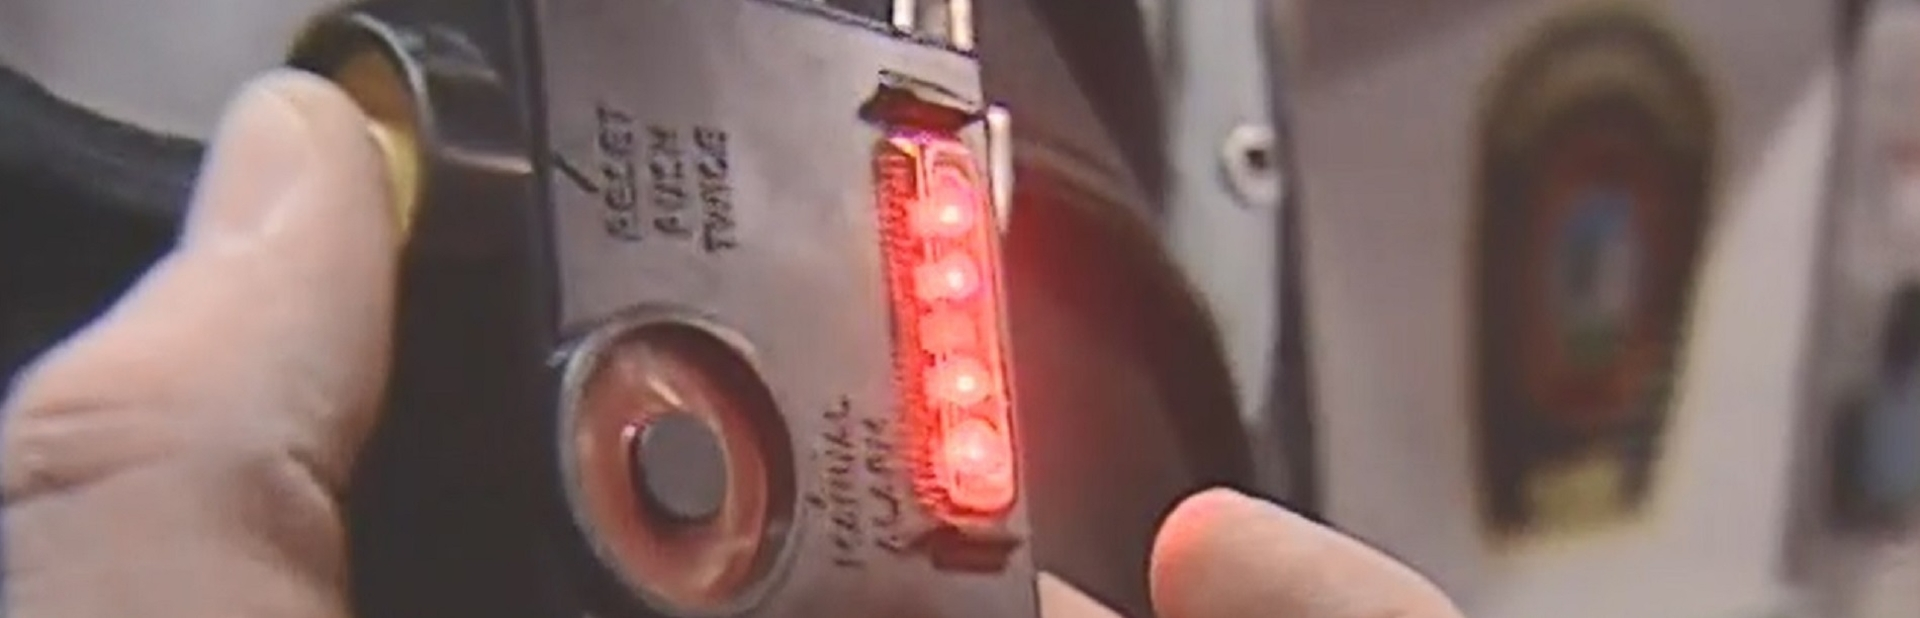 Firefighter safety monitor with lights on